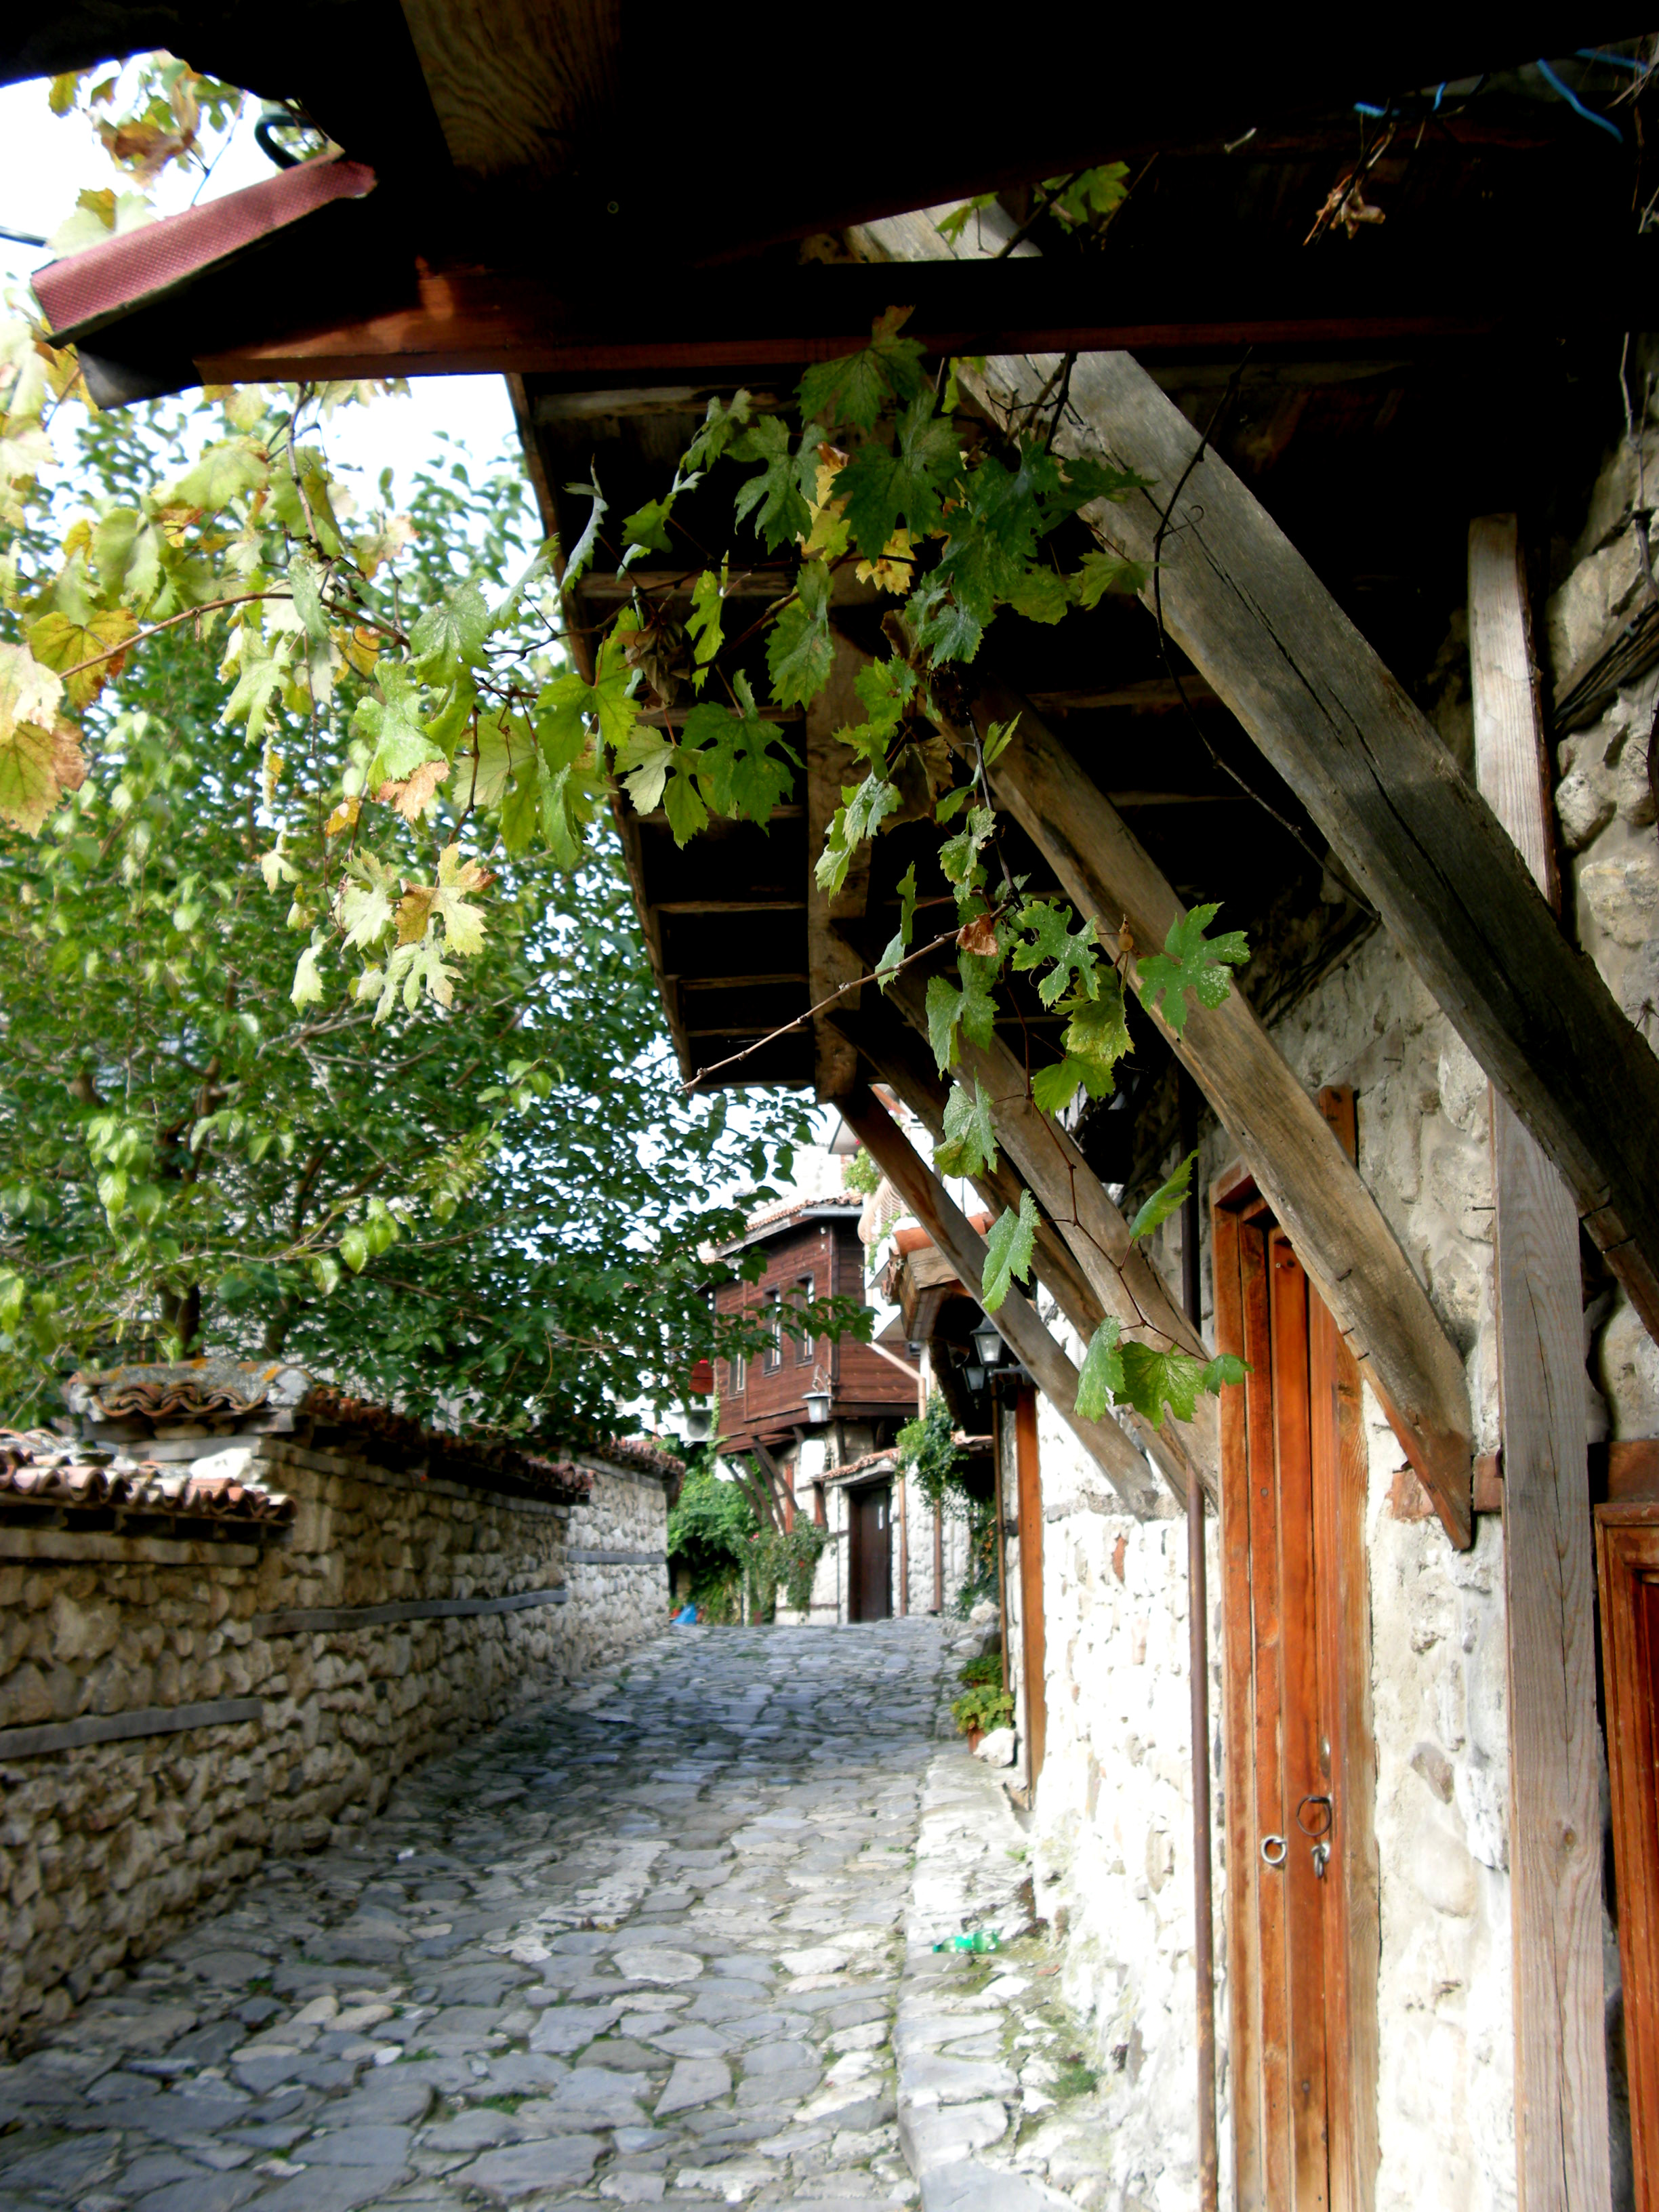 Lauschige Gasse in Nessebar